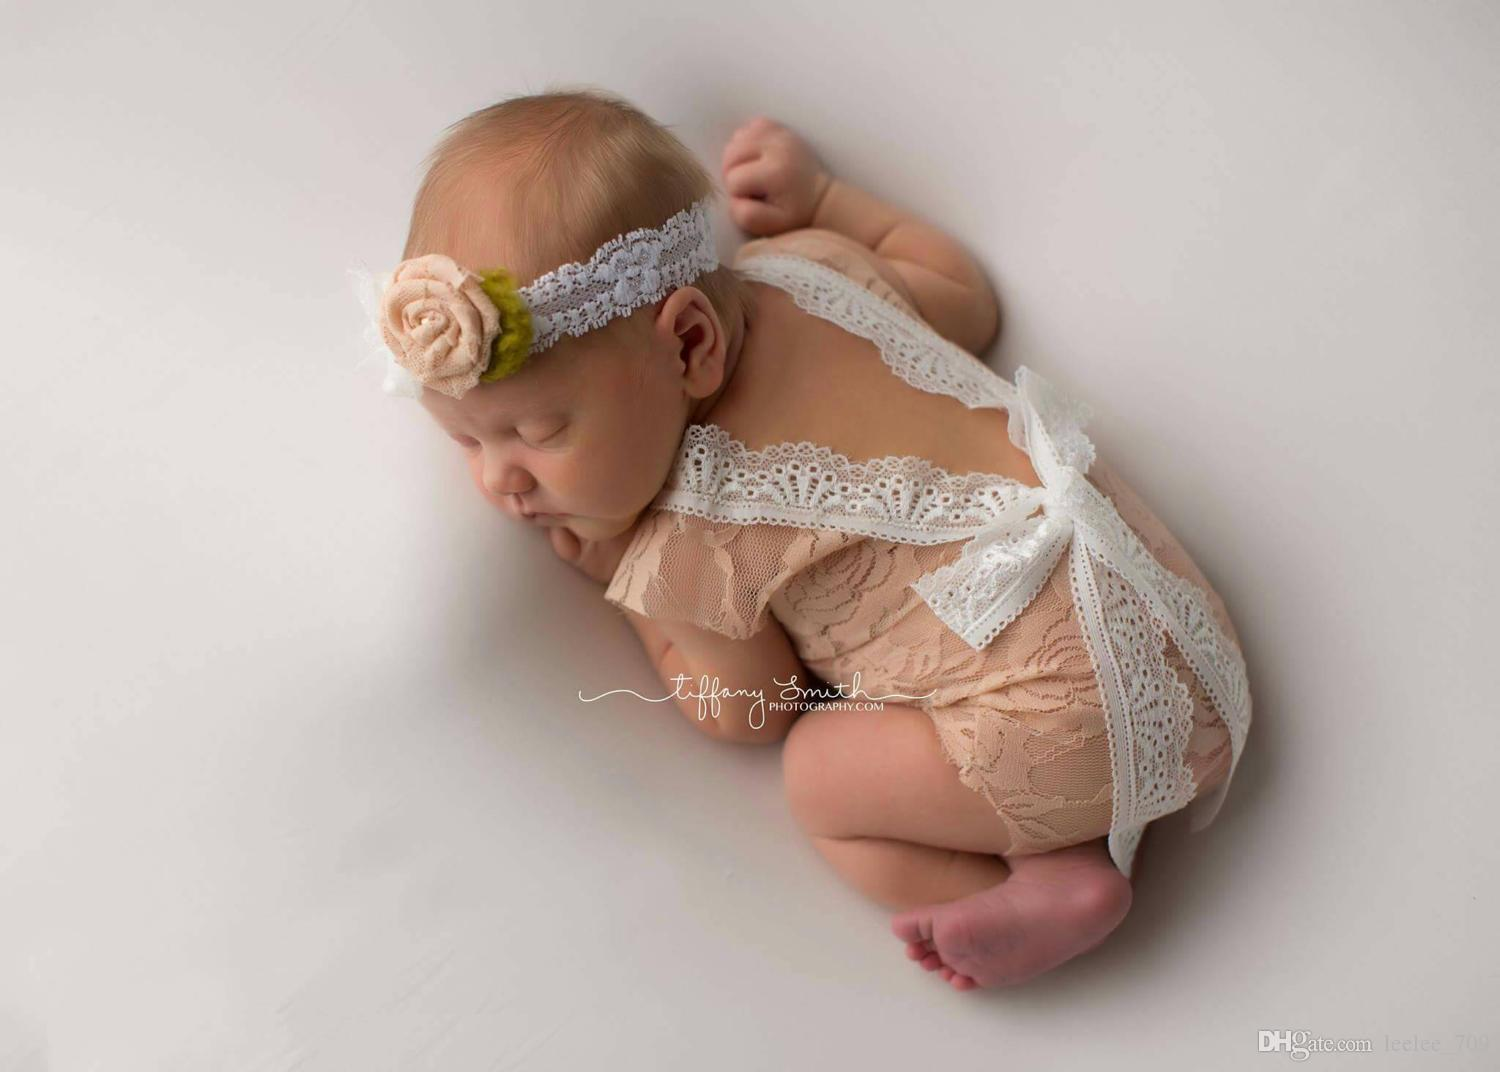 541c03c9217 2019 Fashion Newborn Baby Lace Romper Baby Girl Cute Summer Petti Rompers  Jumpsuits Infant Toddler Photo Clothing Soft Lace Bodysuits 0 3M From  Leelee 709